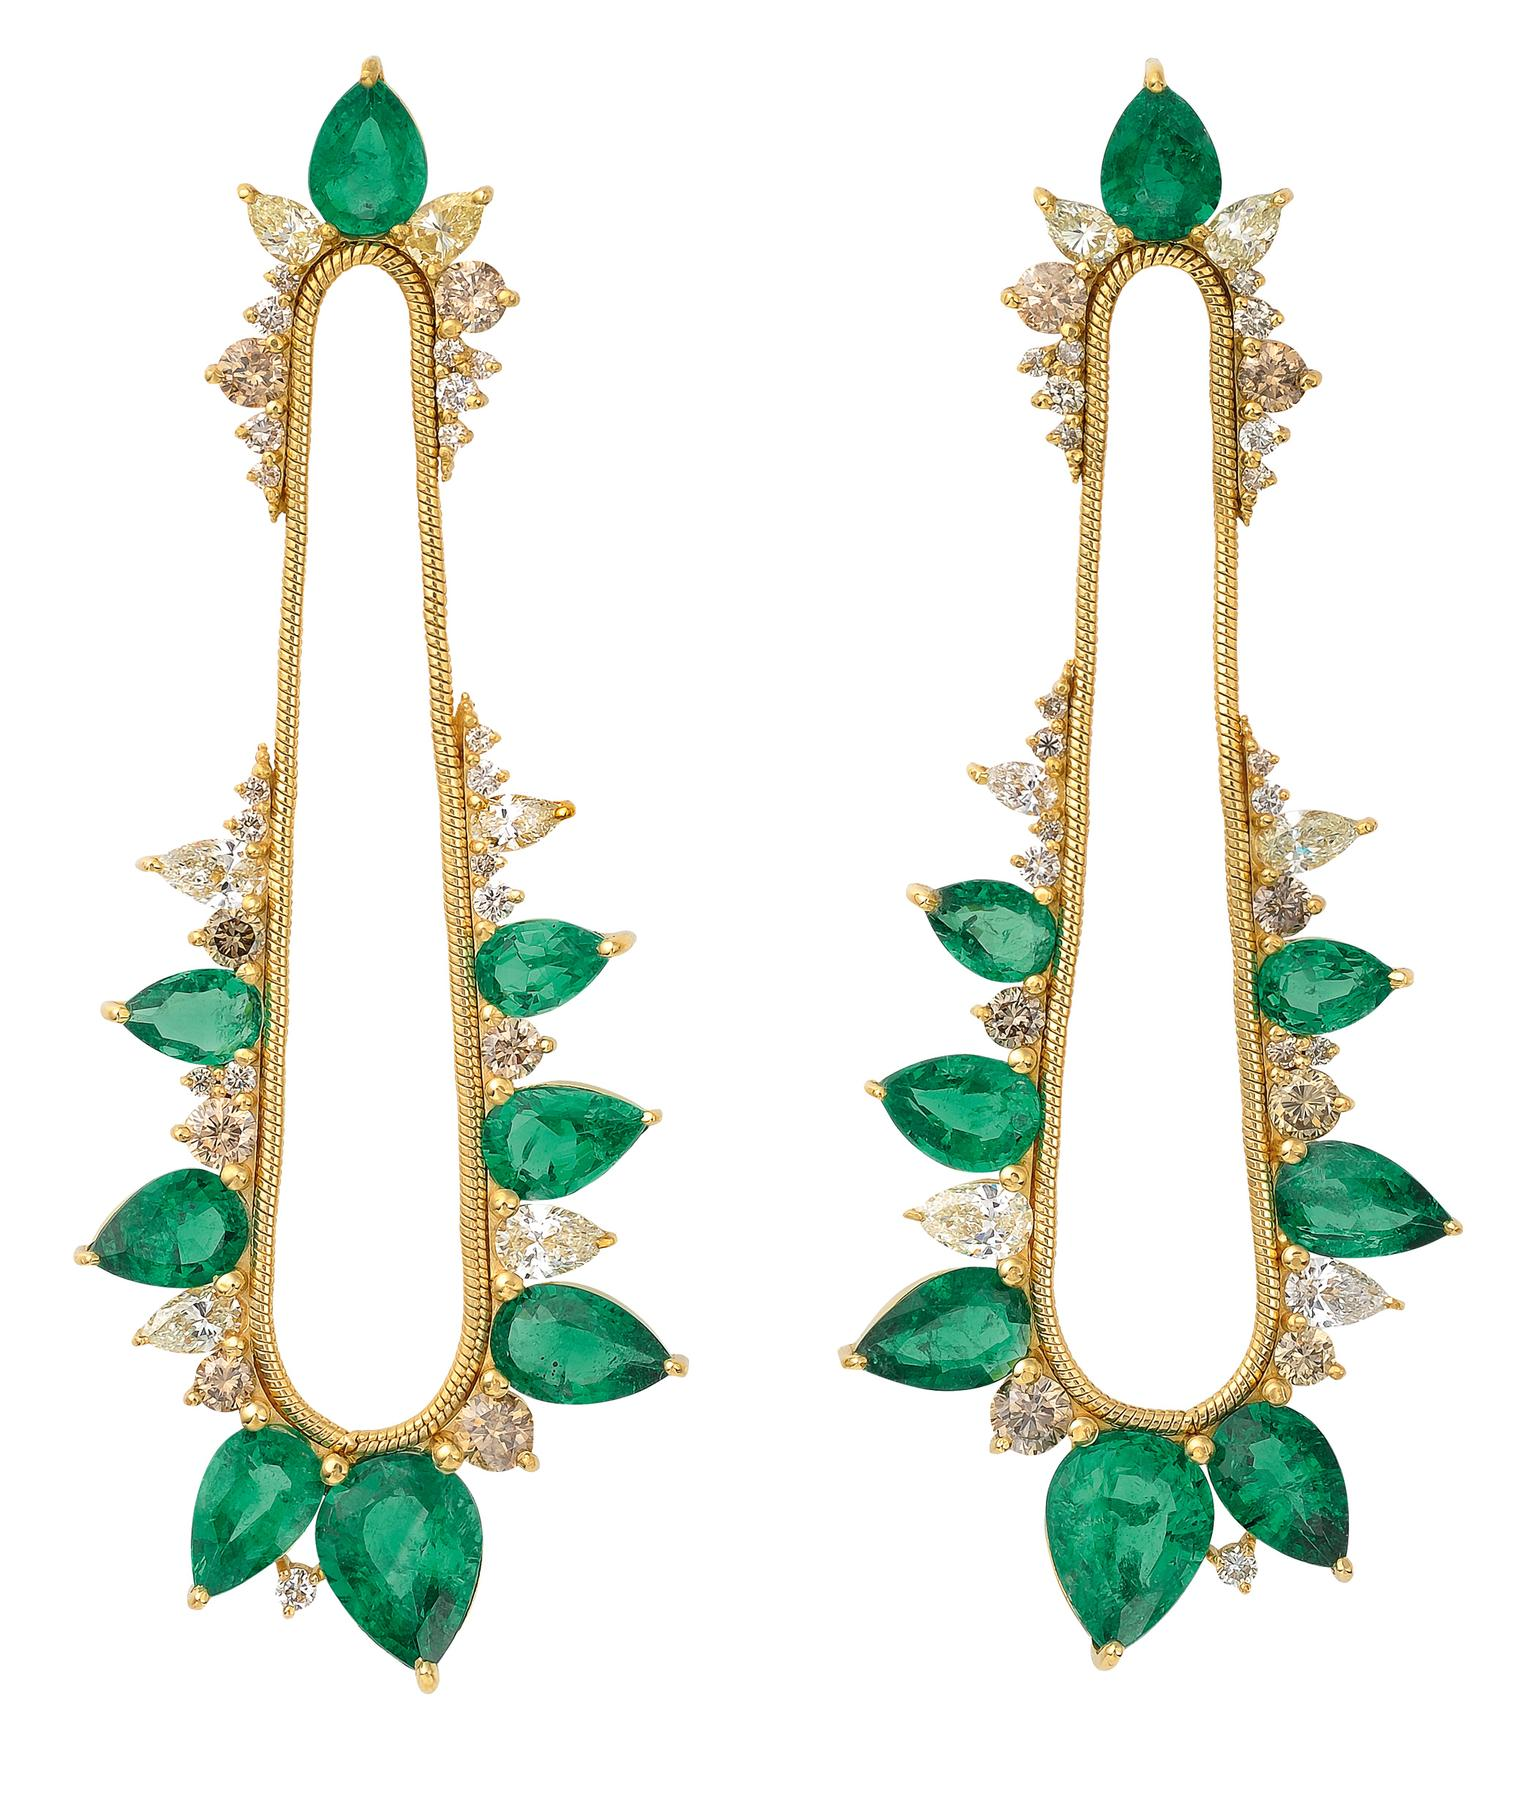 Fernando Jorge for Gemfields emerald earrings_20130905_Zoom